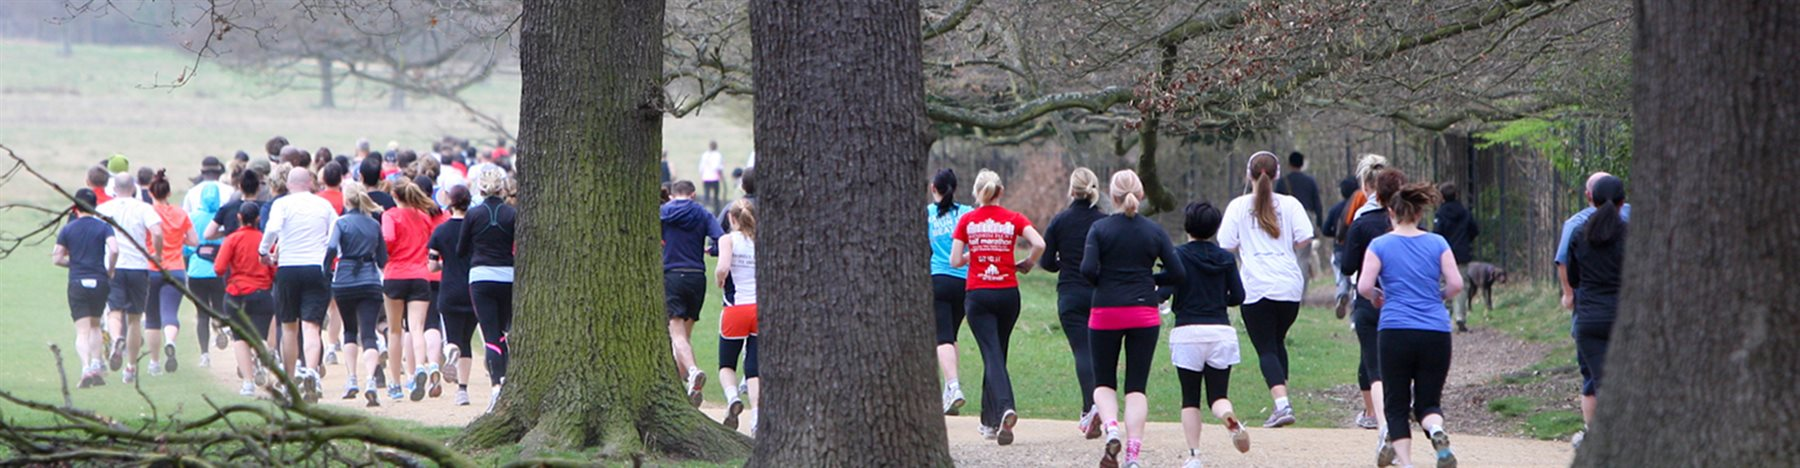 Run Richmond Park 5k & 10k Mar-7 2020